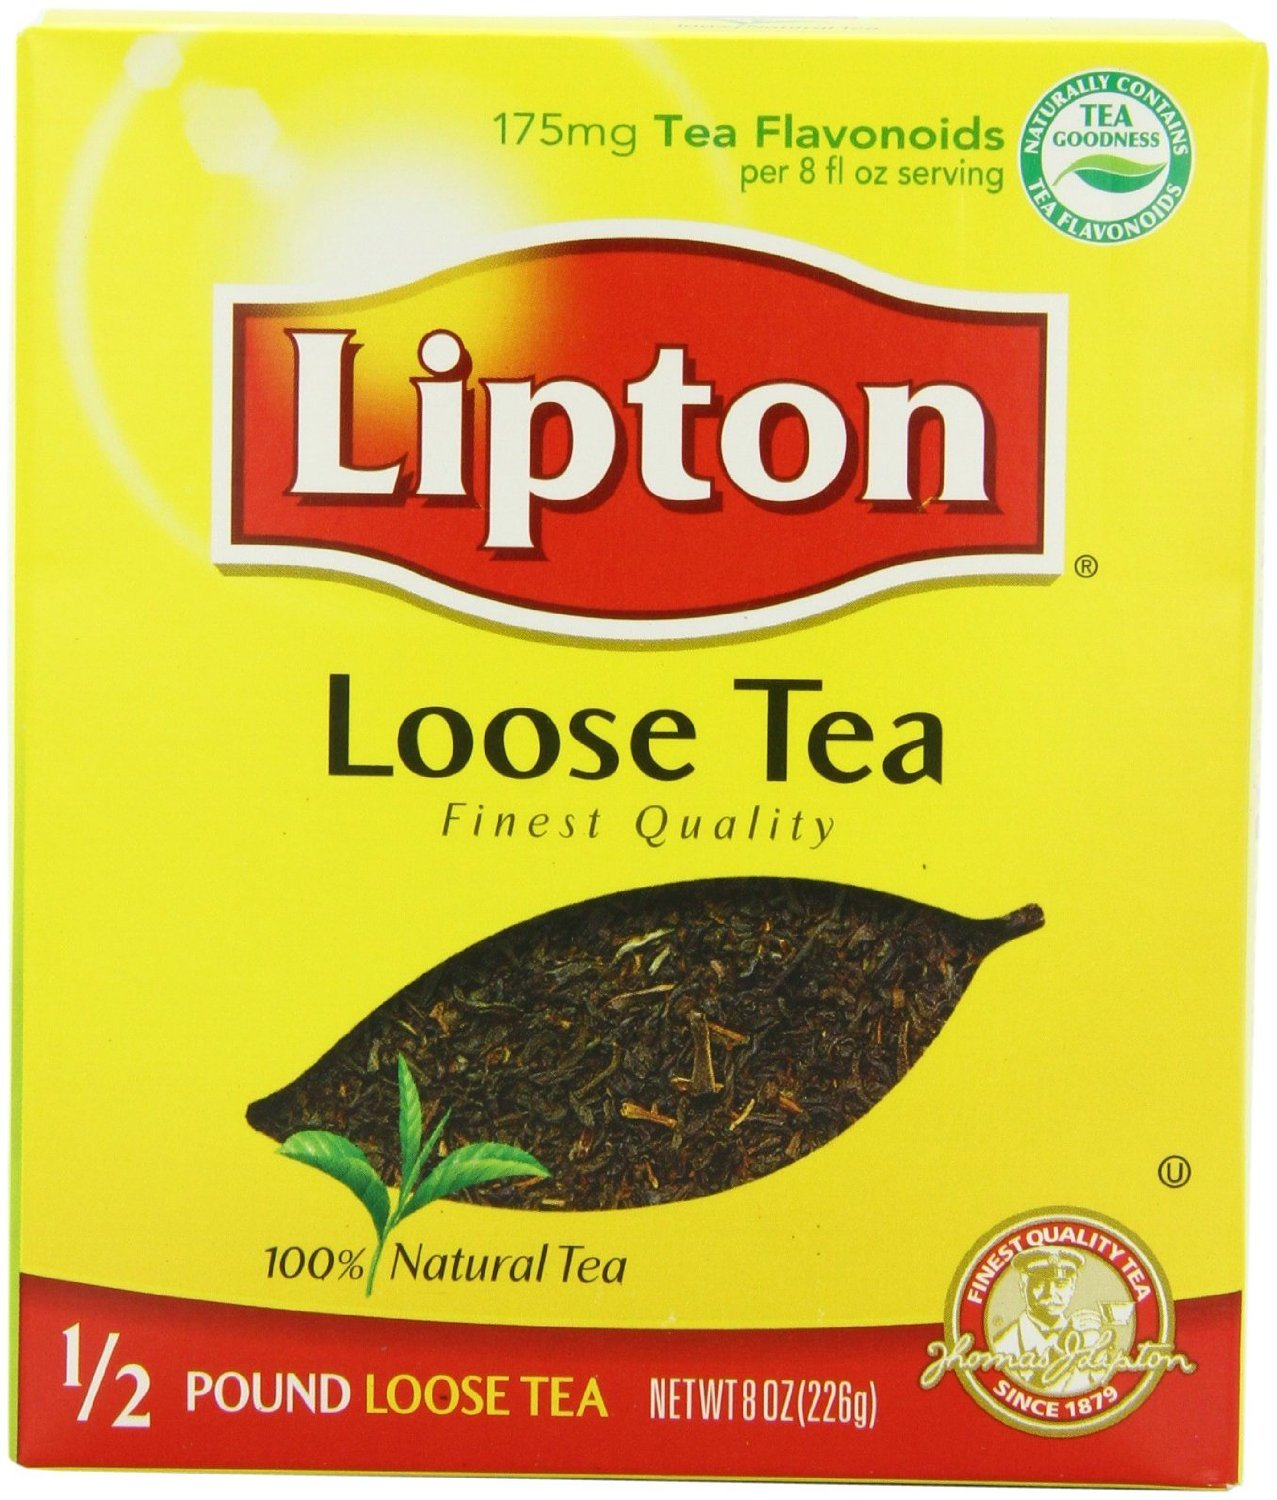 Lipton Cheap mail Seattle Mall order specialty store Black Loose Tea 8oz Box of Pack 3